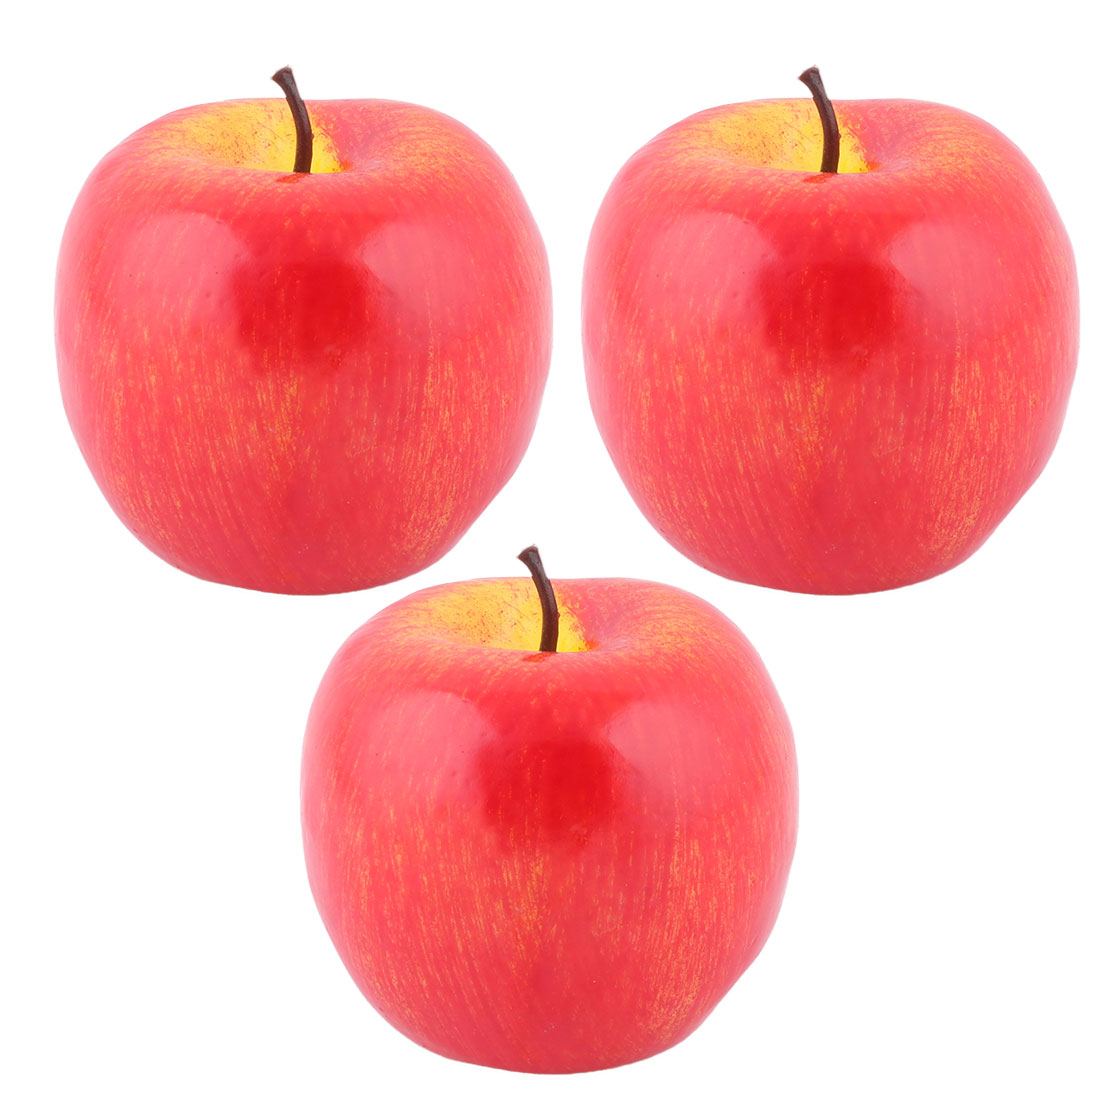 House Table Decor Foam Artificial Apple Designed Emulation Fruit Mold Red 3pcs